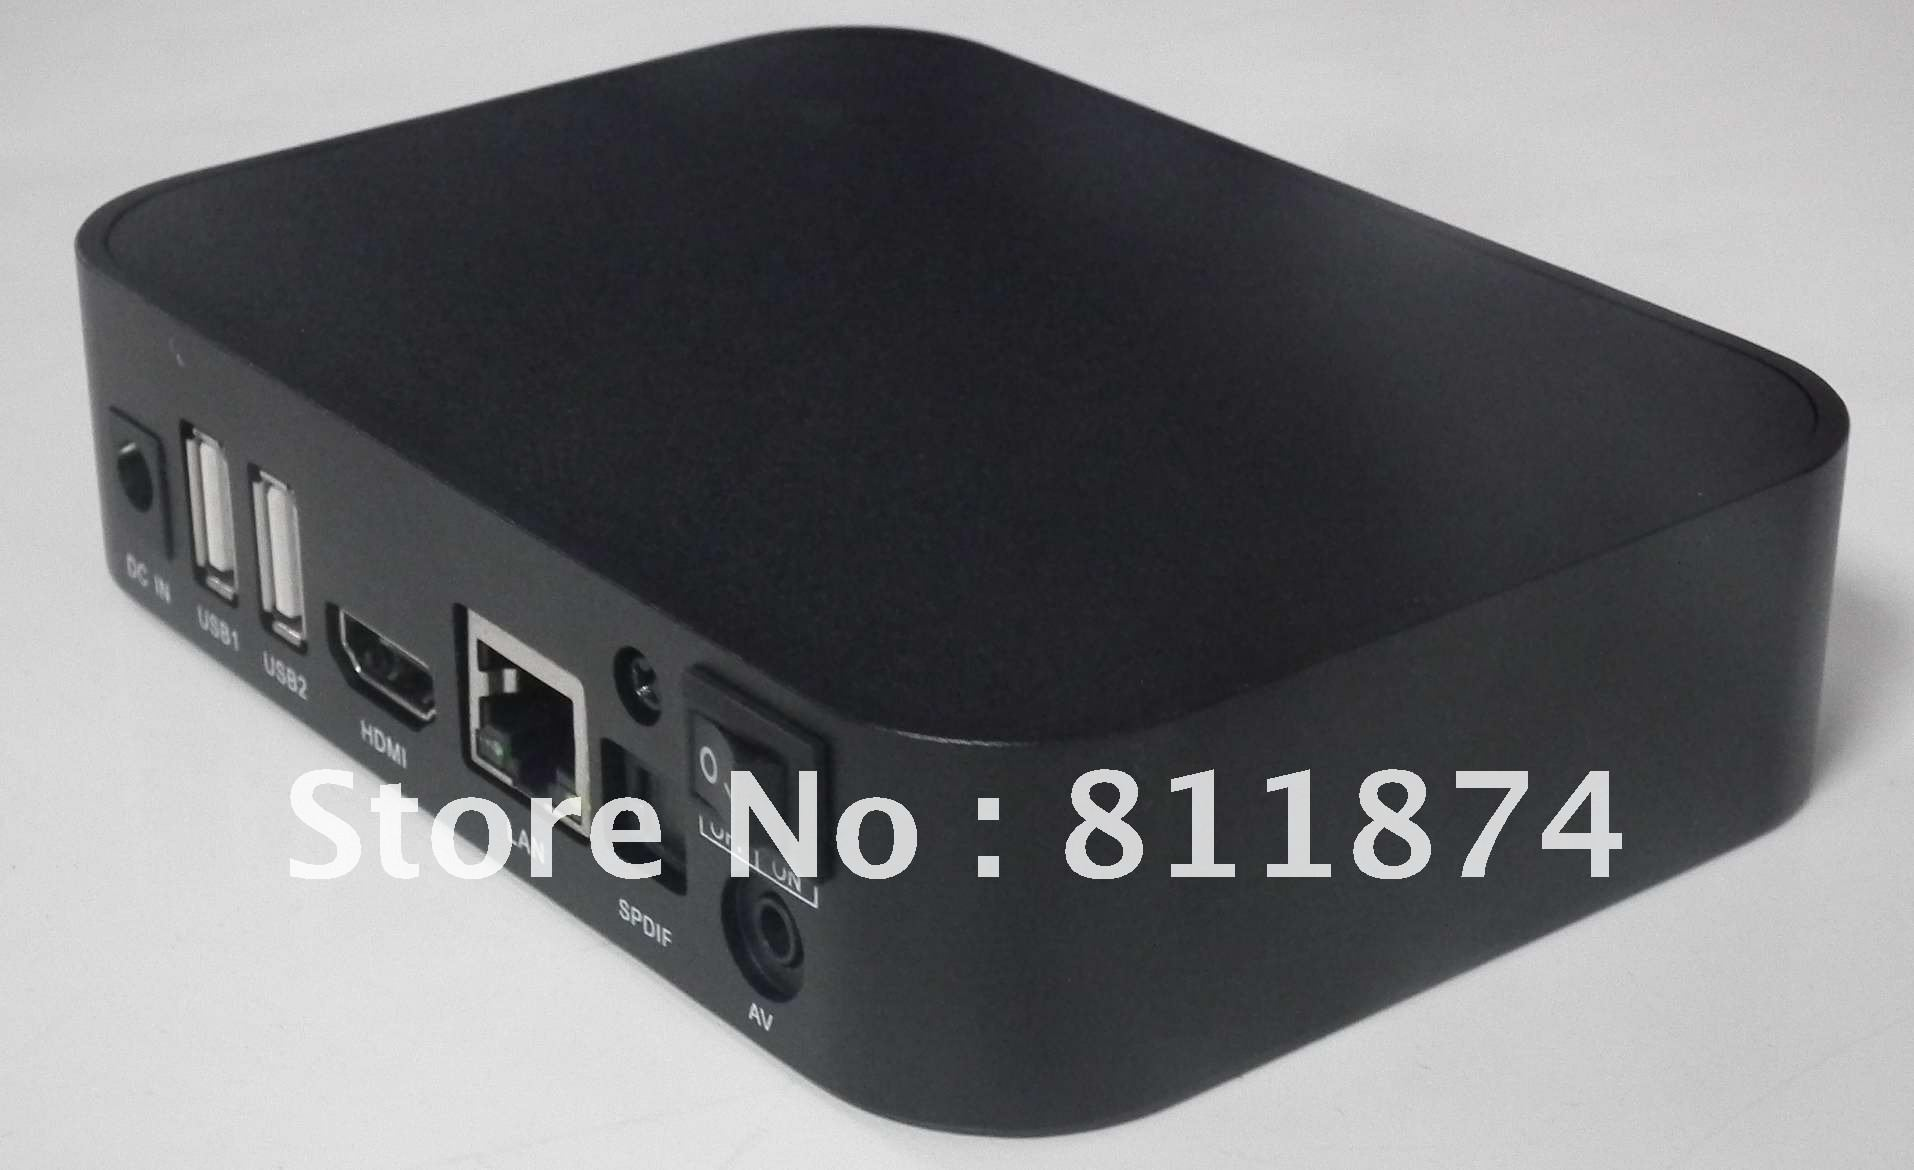 2012 new model iptv -h653 , search Chinese channels mini tv receiver box HD,HDMI, 1080p+ - Online Store DESHENS store